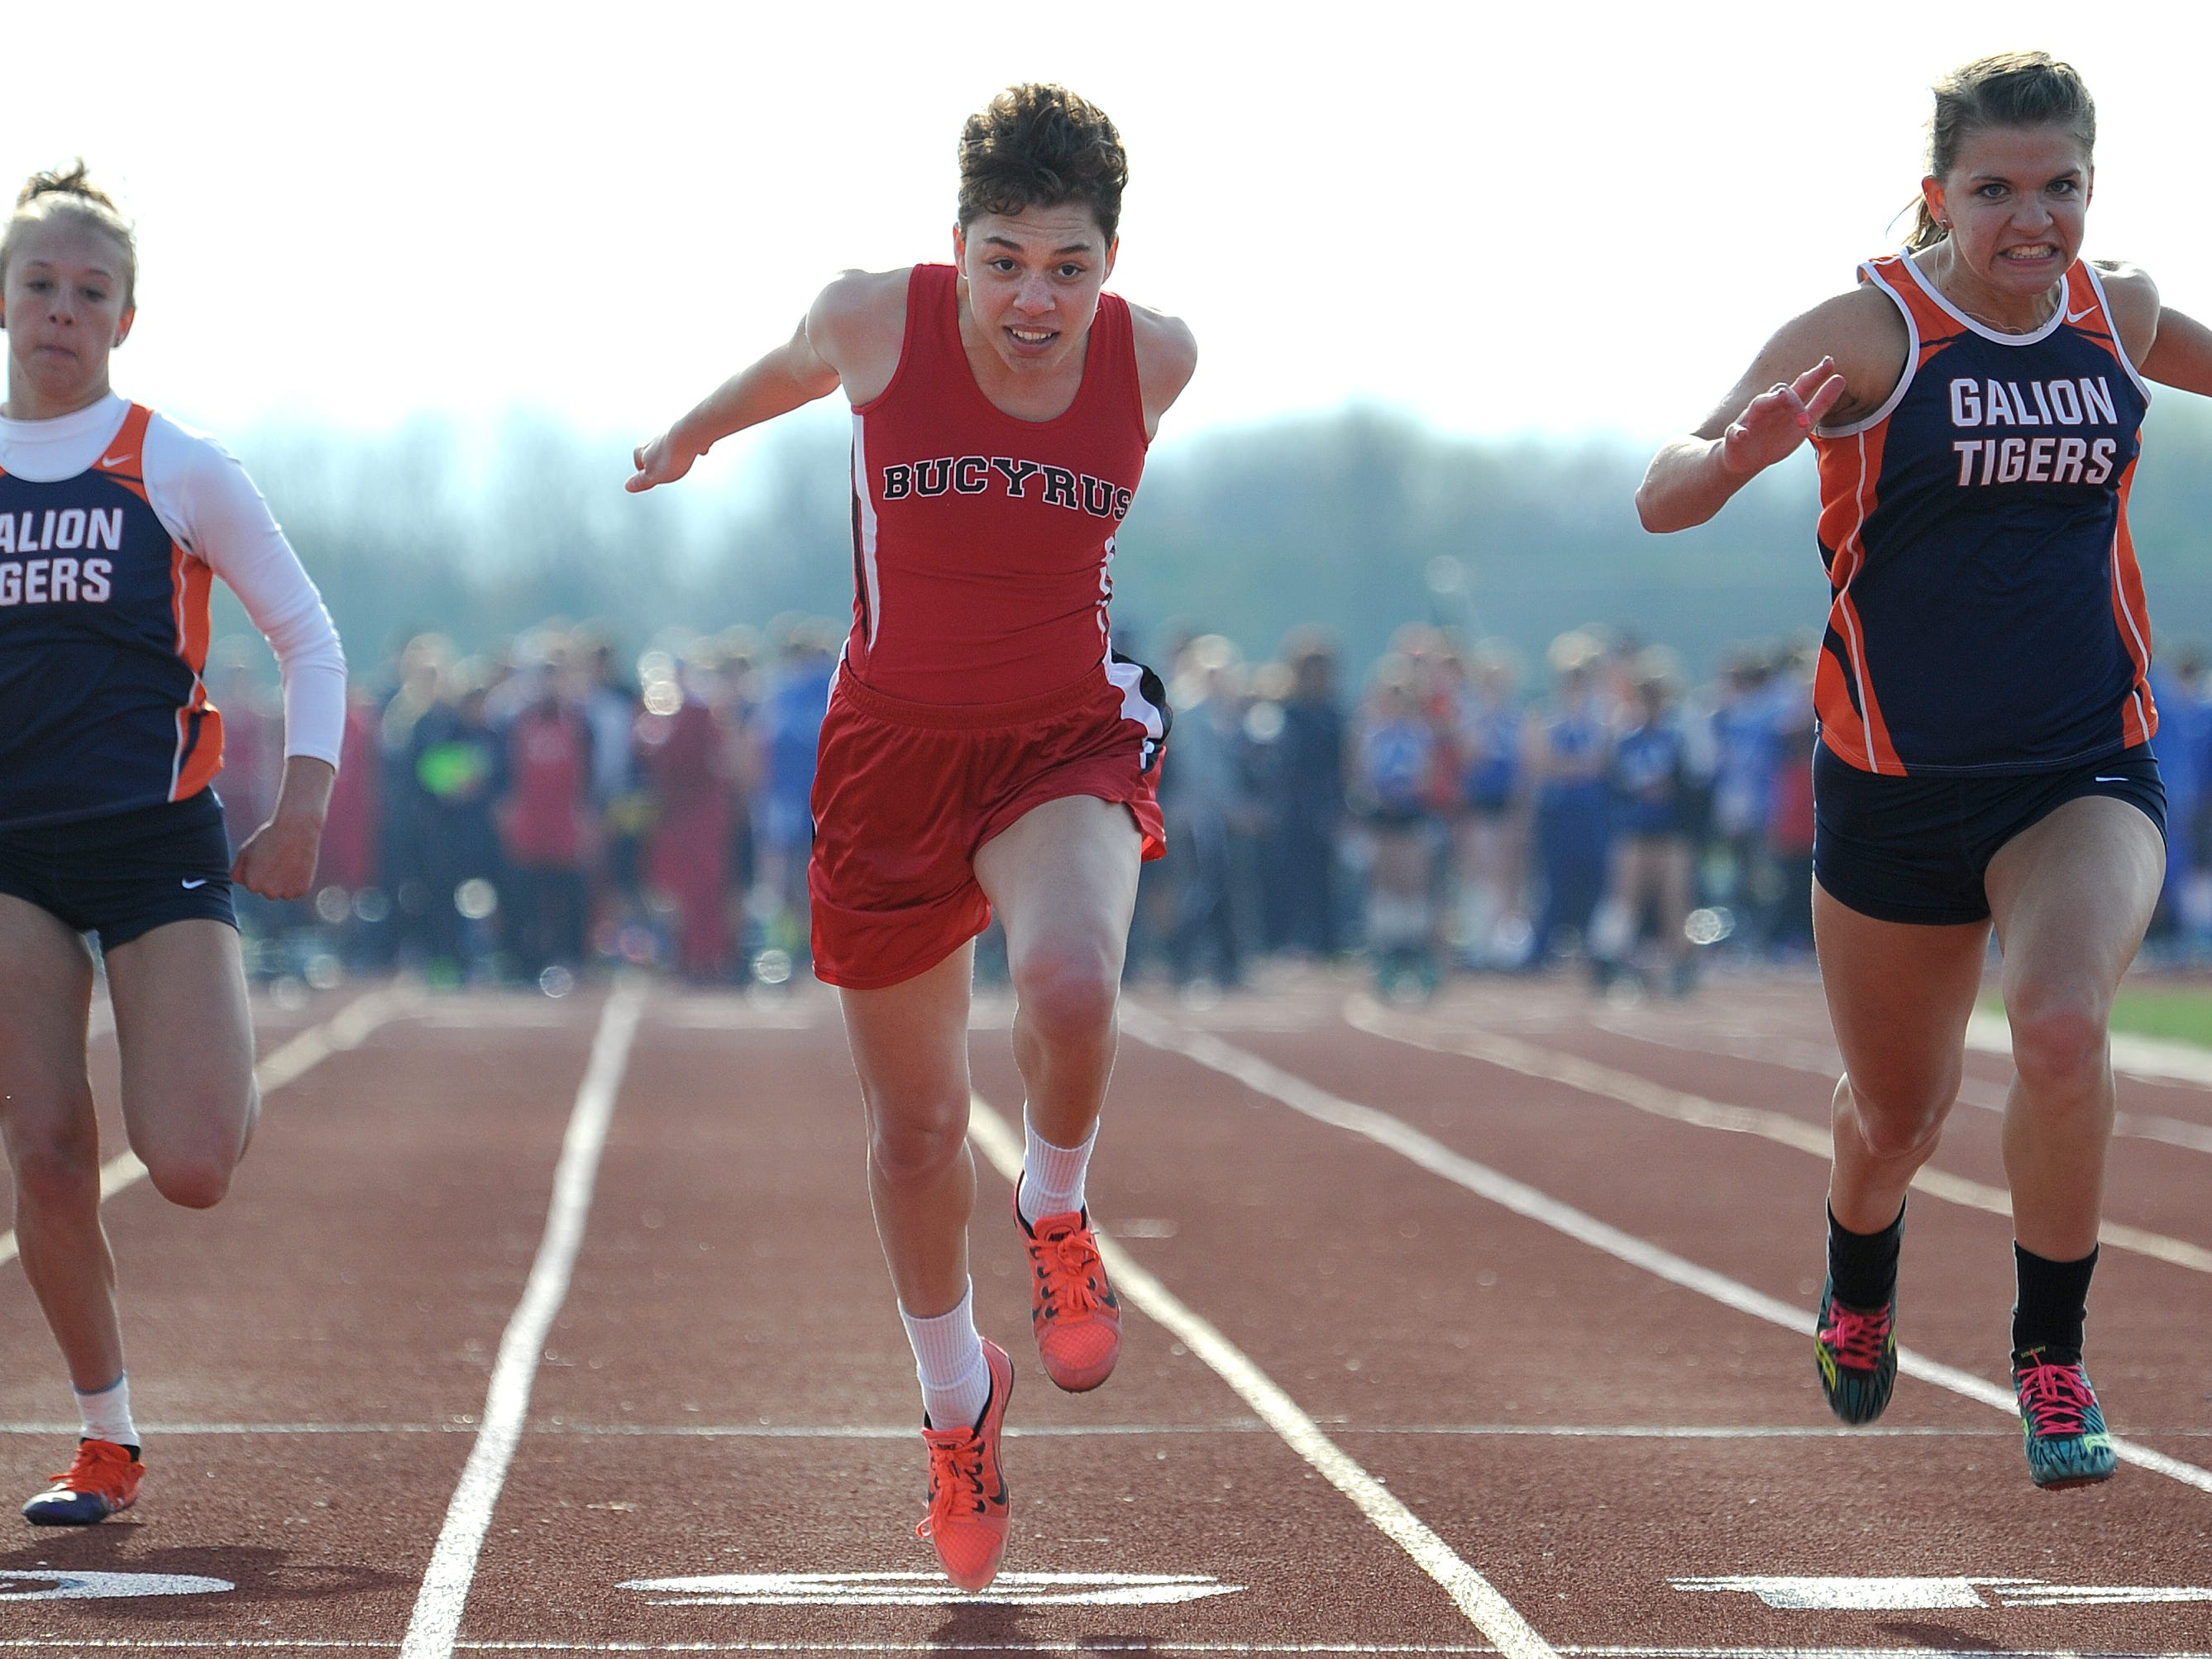 Bucyrus' Brittany Parsell stretches herself across the finish line of the 100 meter dash Friday evening at the Crawford County Track Meet.